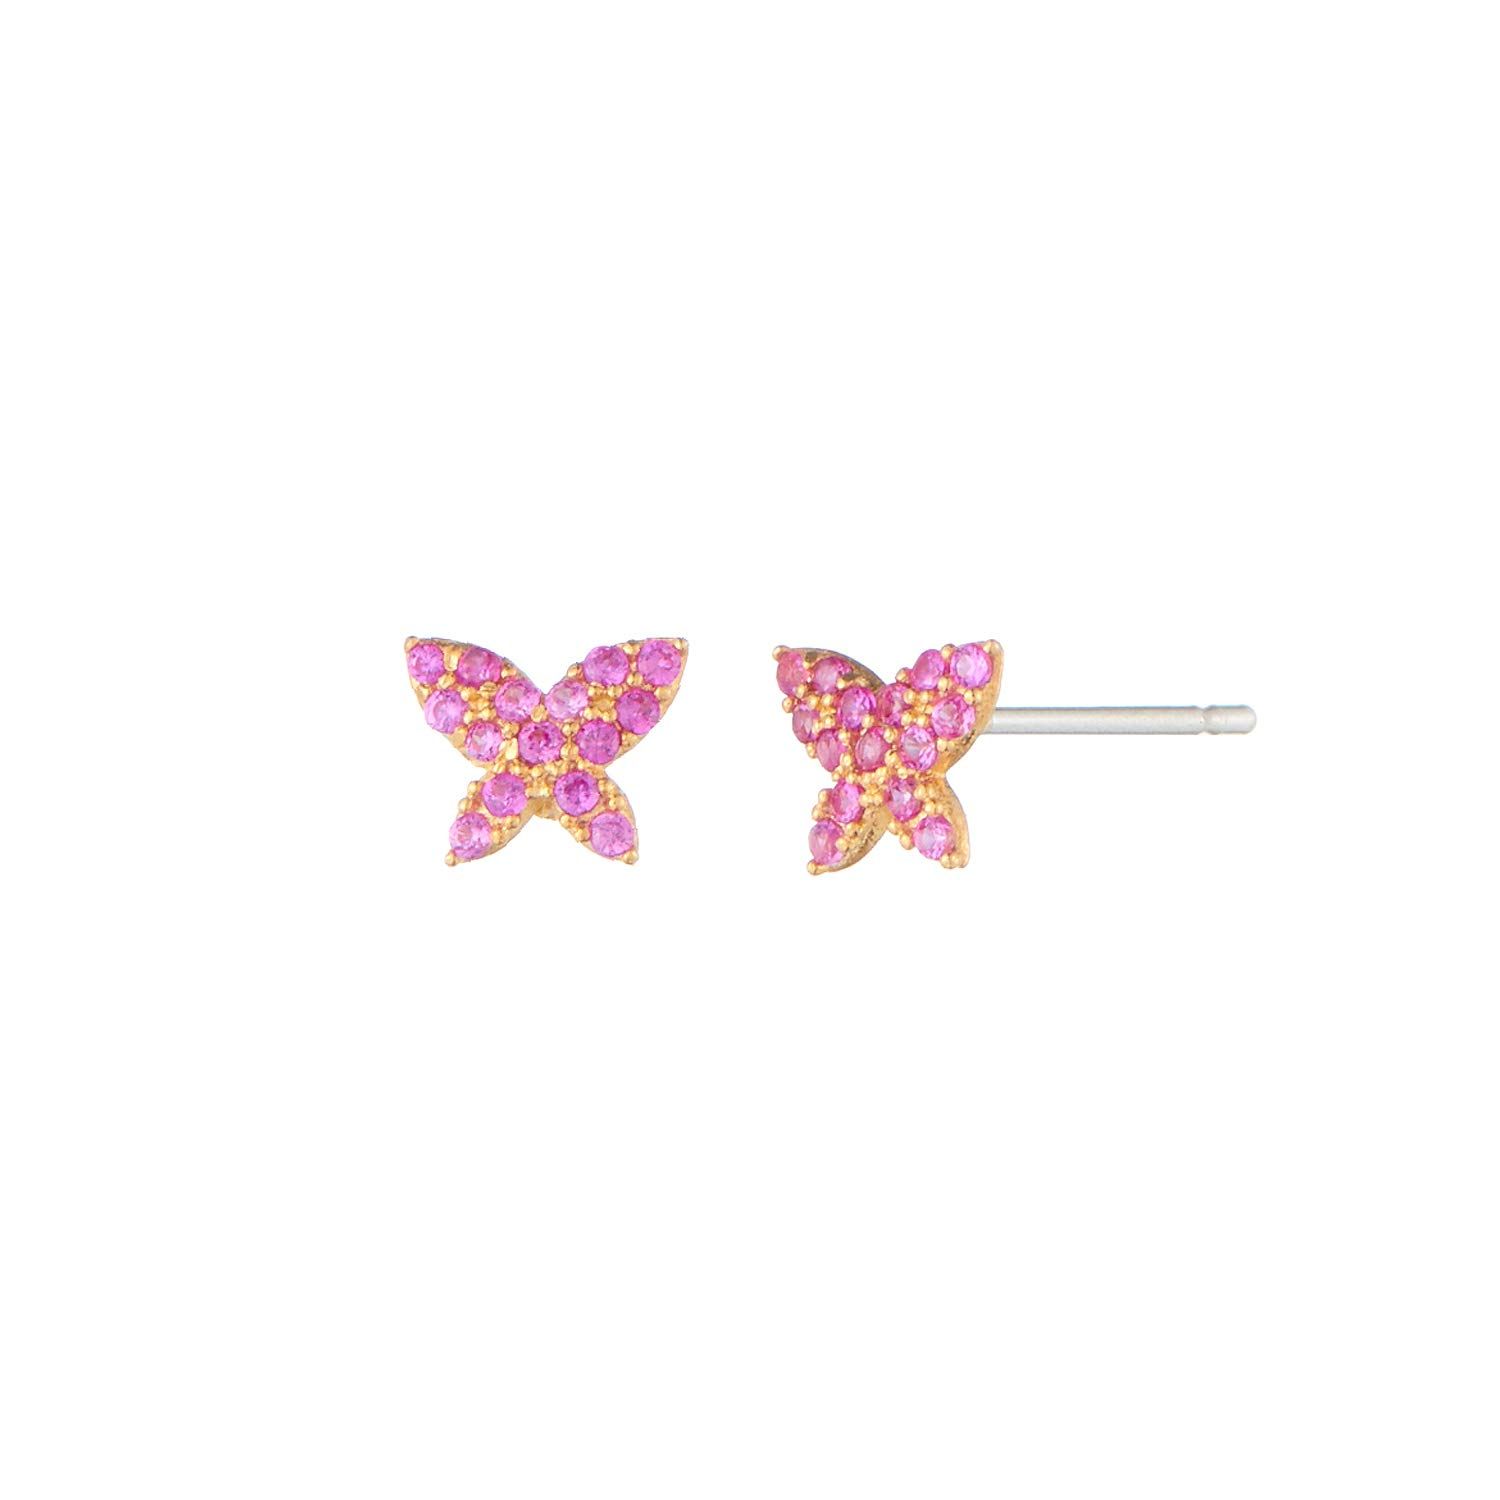 S'SECONDO 925 Sterling Silver Cubic Zirconia Small Butterfly Stud Earring for Women and Girls